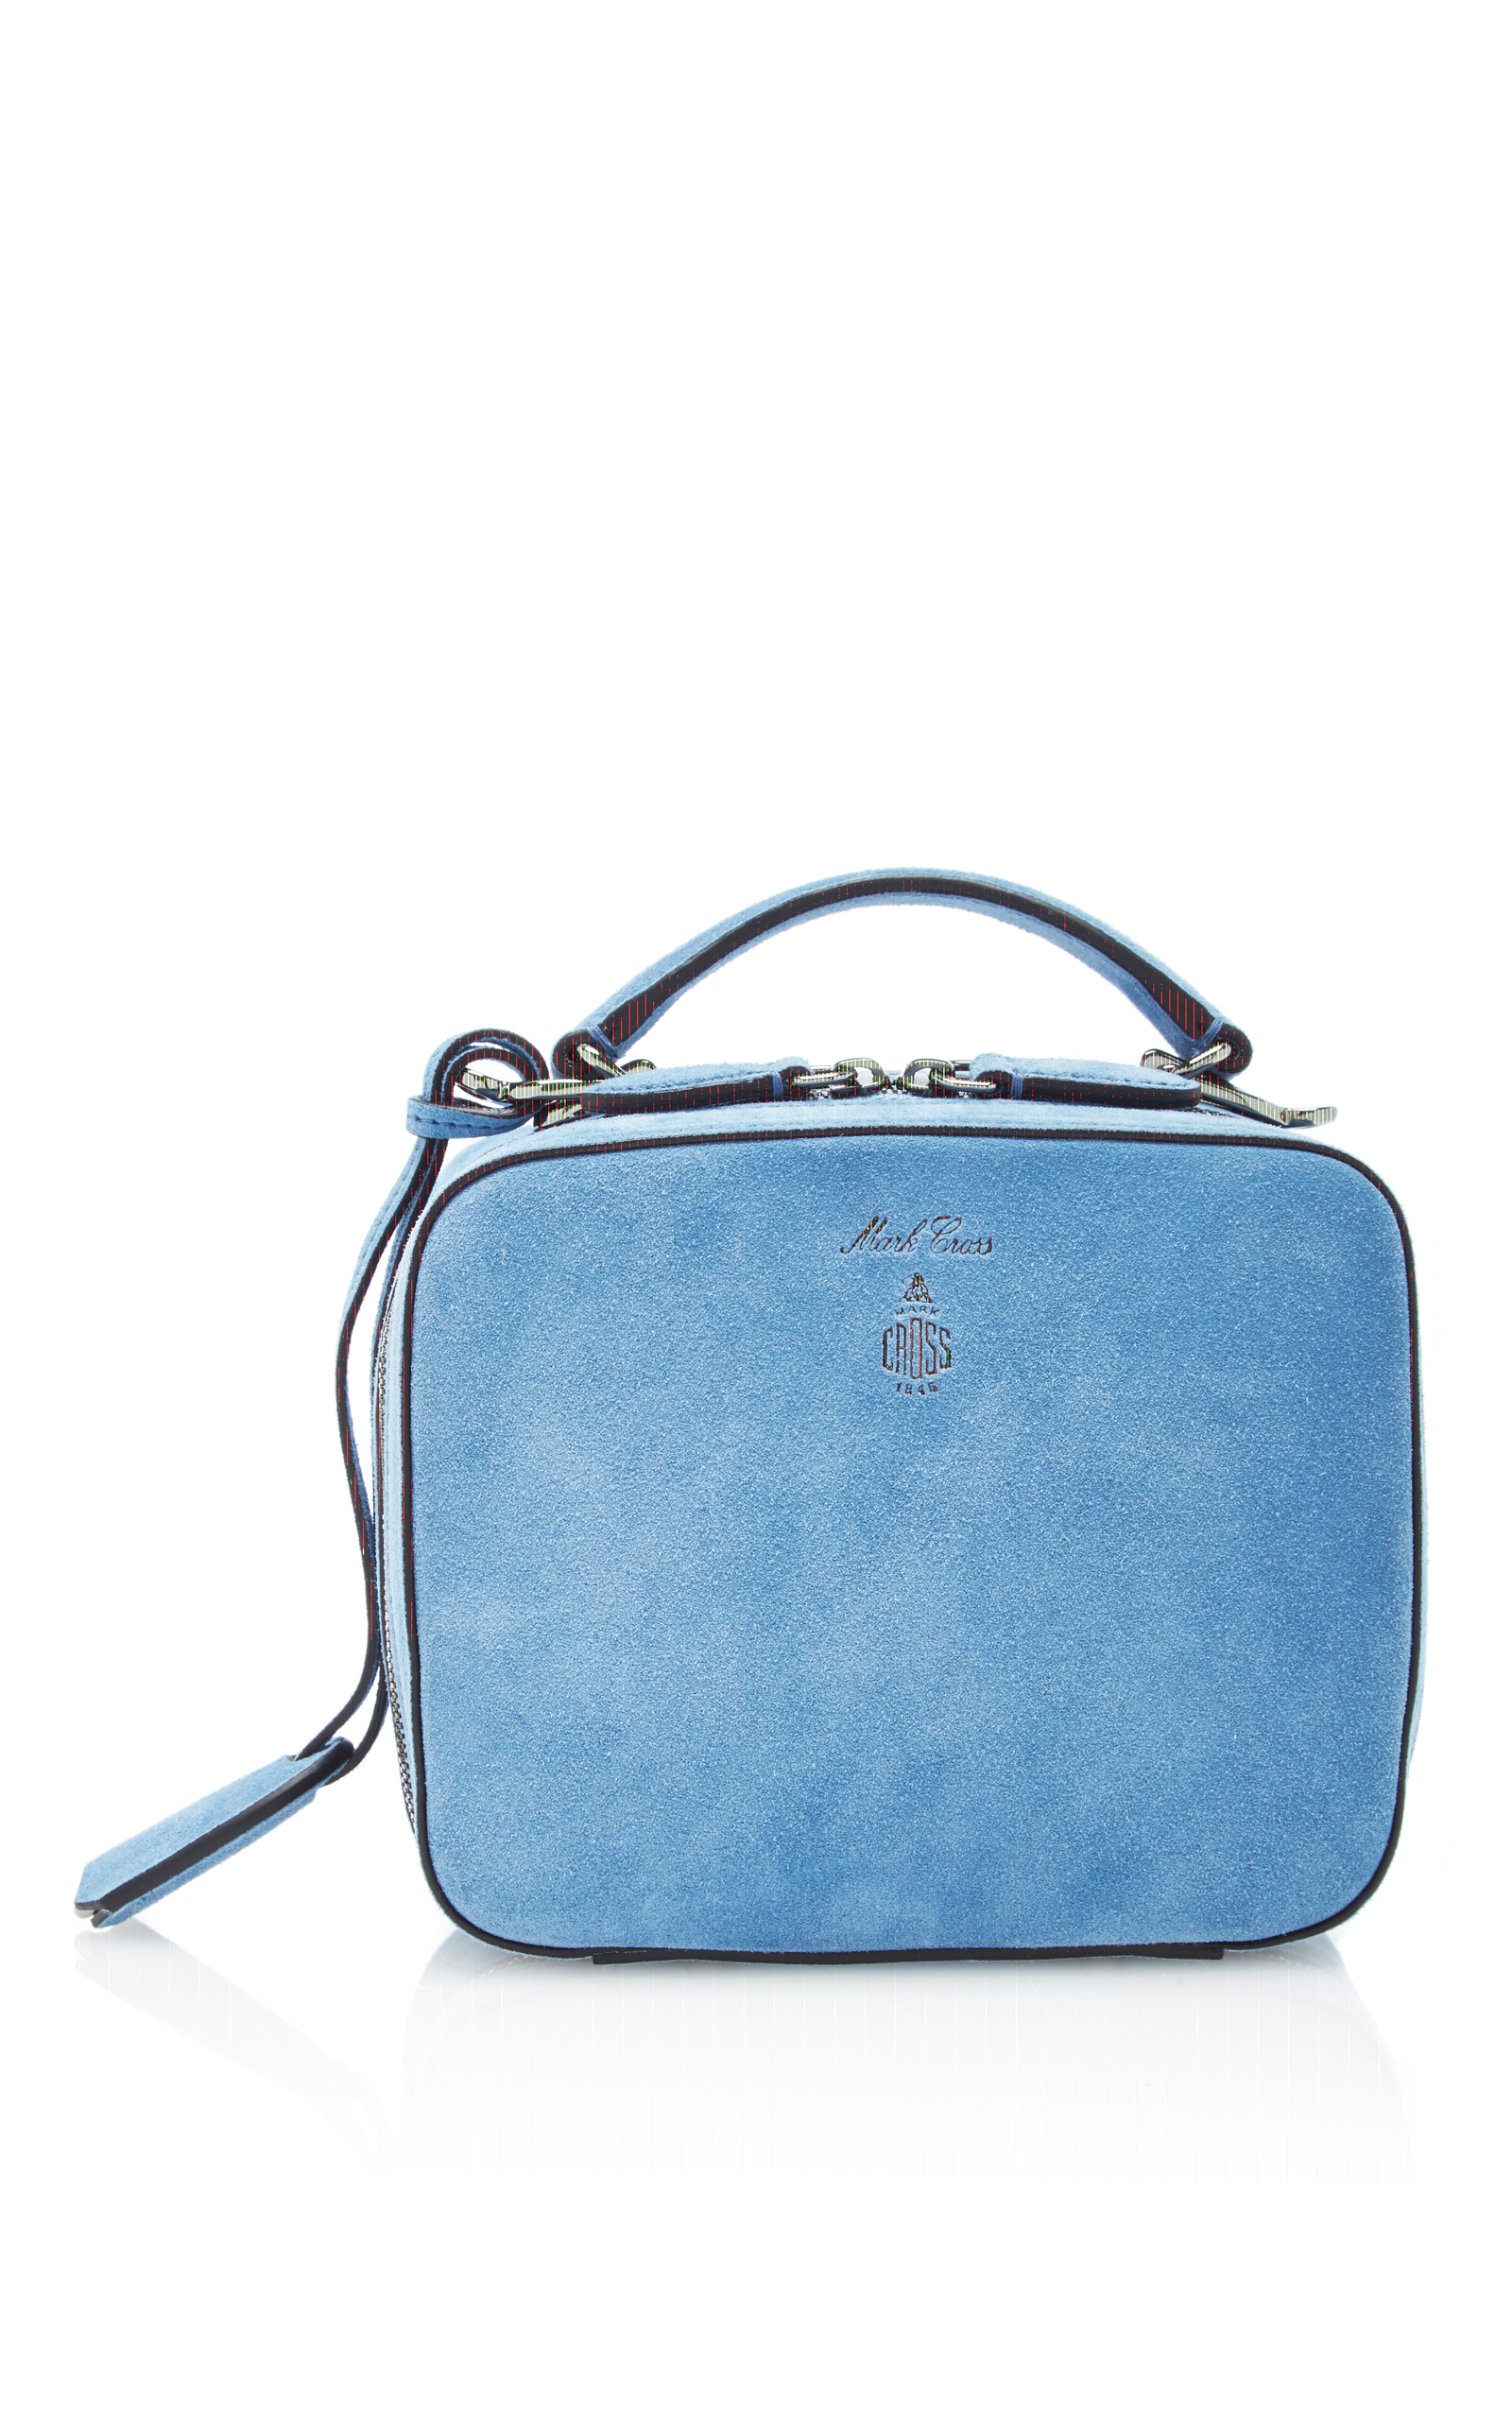 a0f7d52a4a47 Mark CrossSuede Baby Laura Bag. CLOSE. Loading